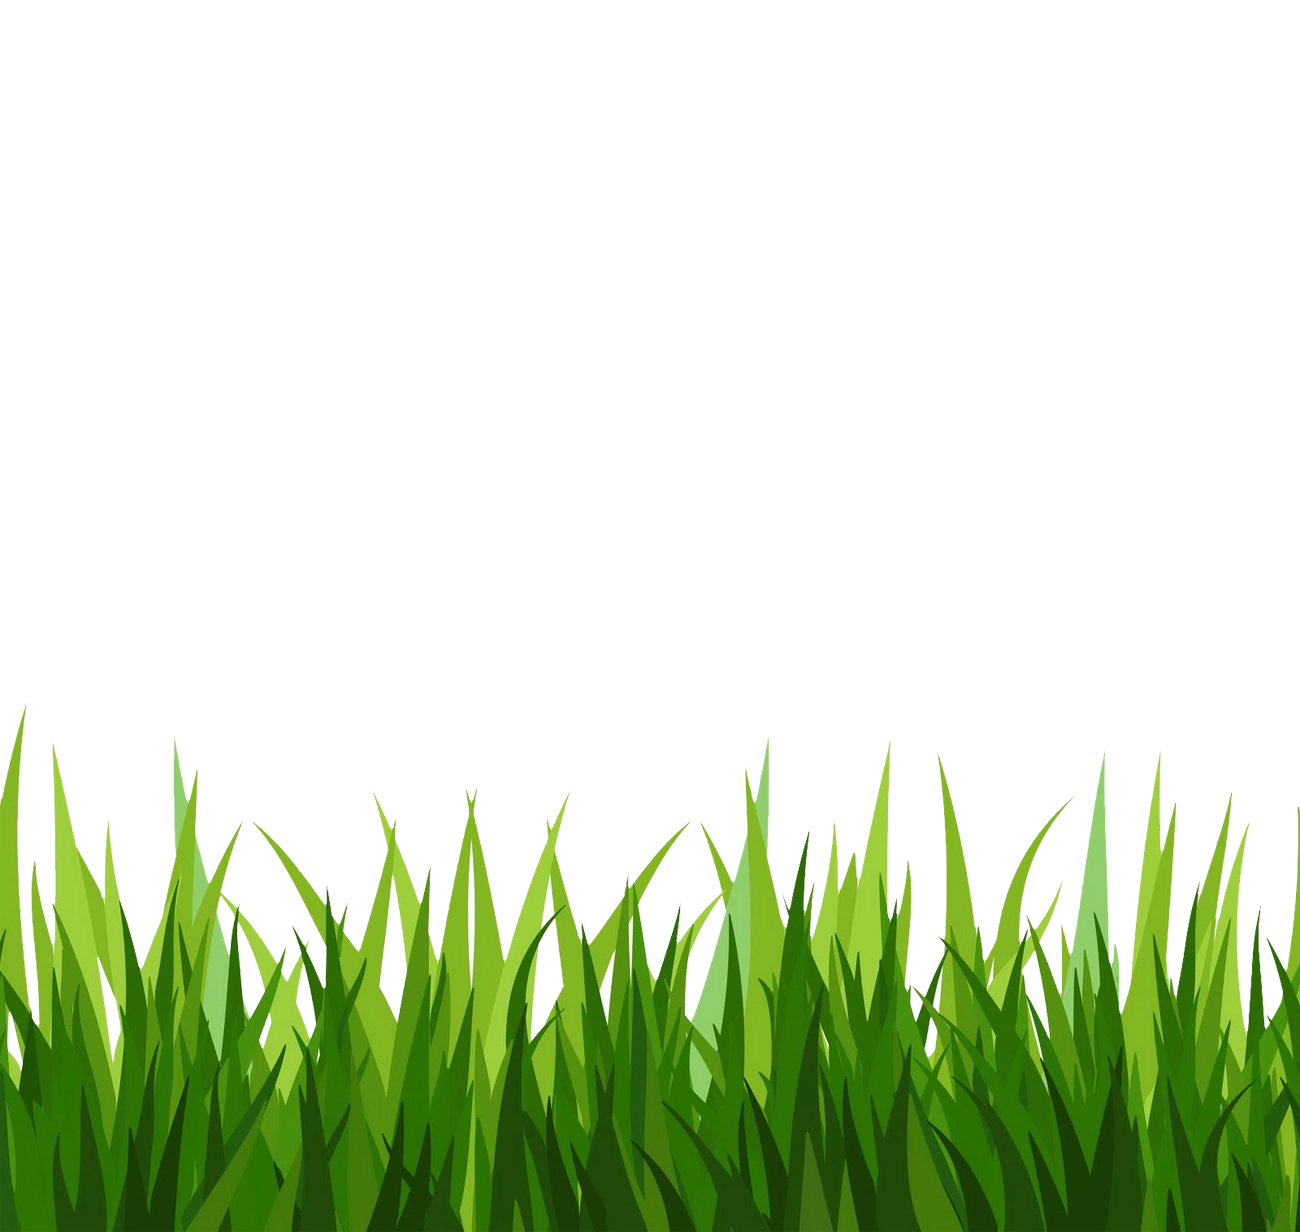 Free Grass Transparent Png, Download Free Clip Art, Free.